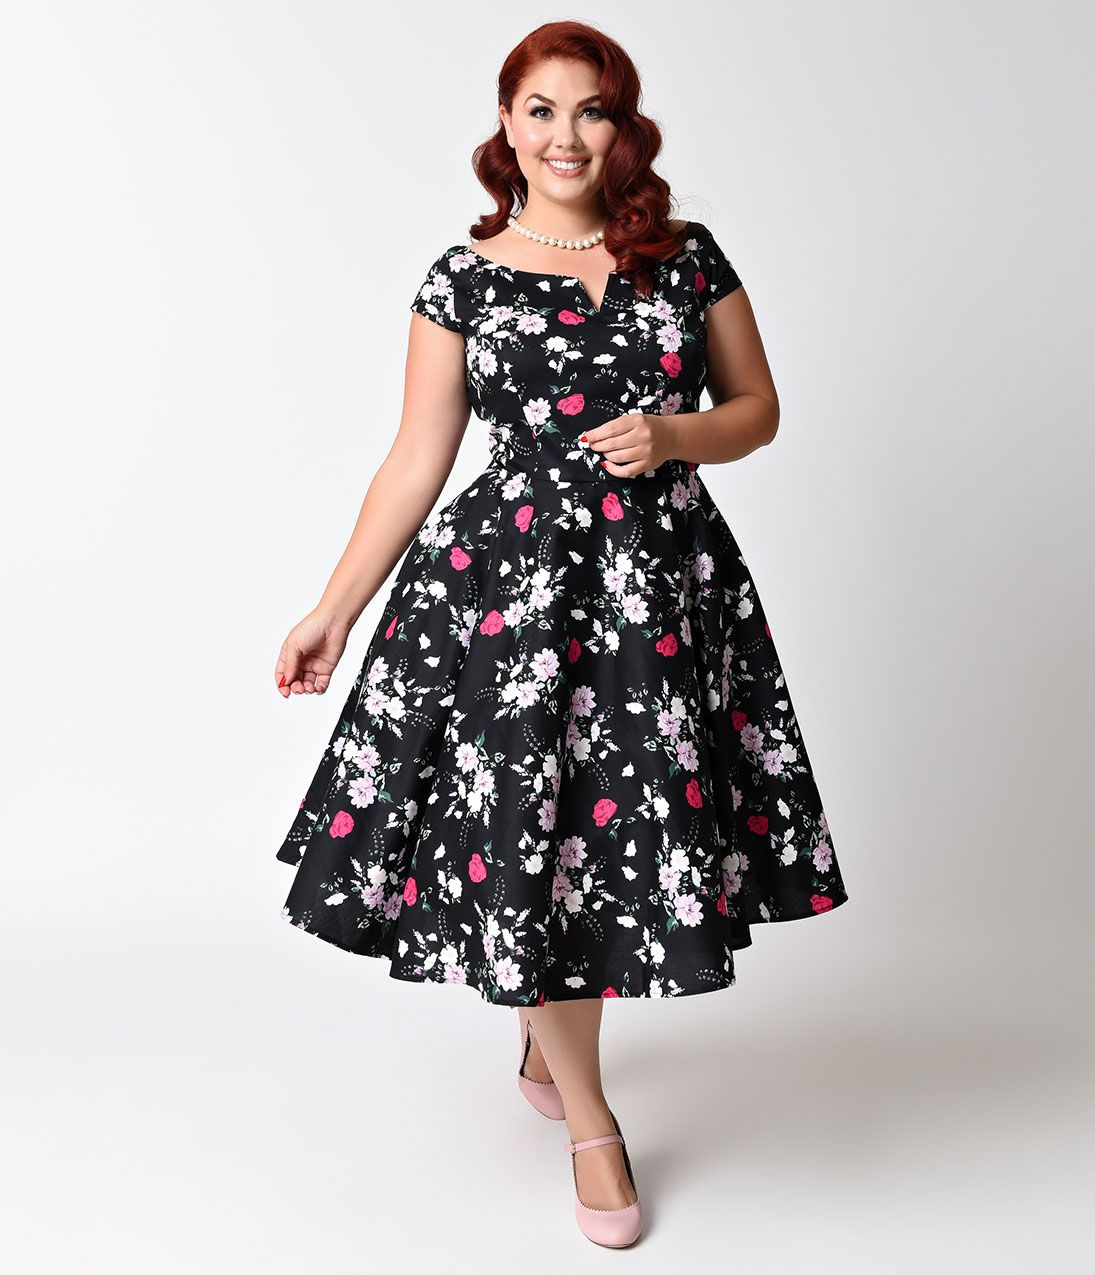 d8da9543a93 Plus Size 1950s Style Floral Swing Dress Tea Length